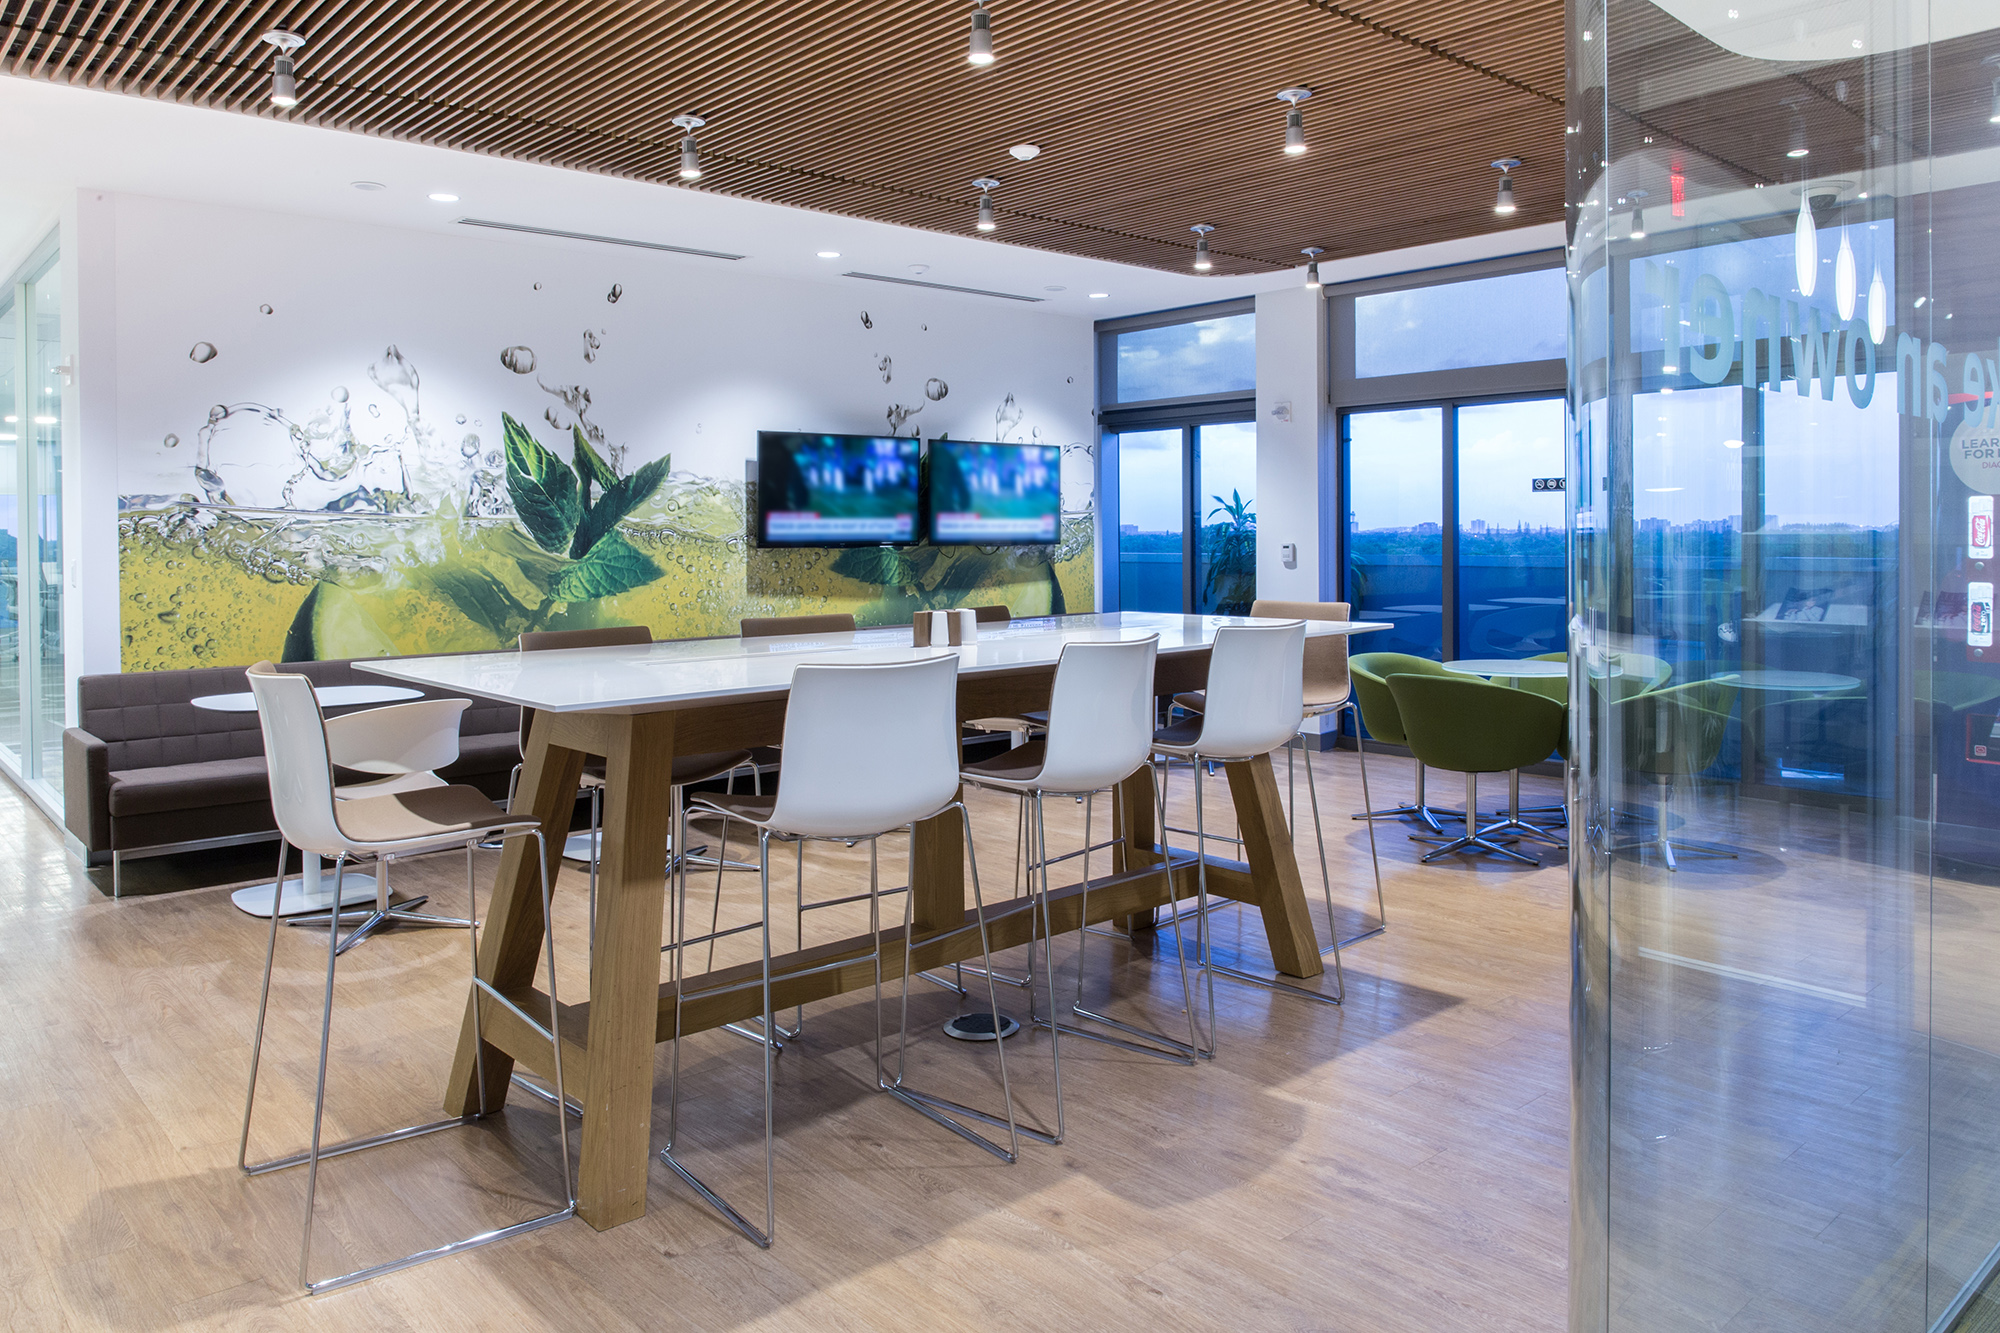 Diageos Miami Office Awarded Leed Certification 3bl Media